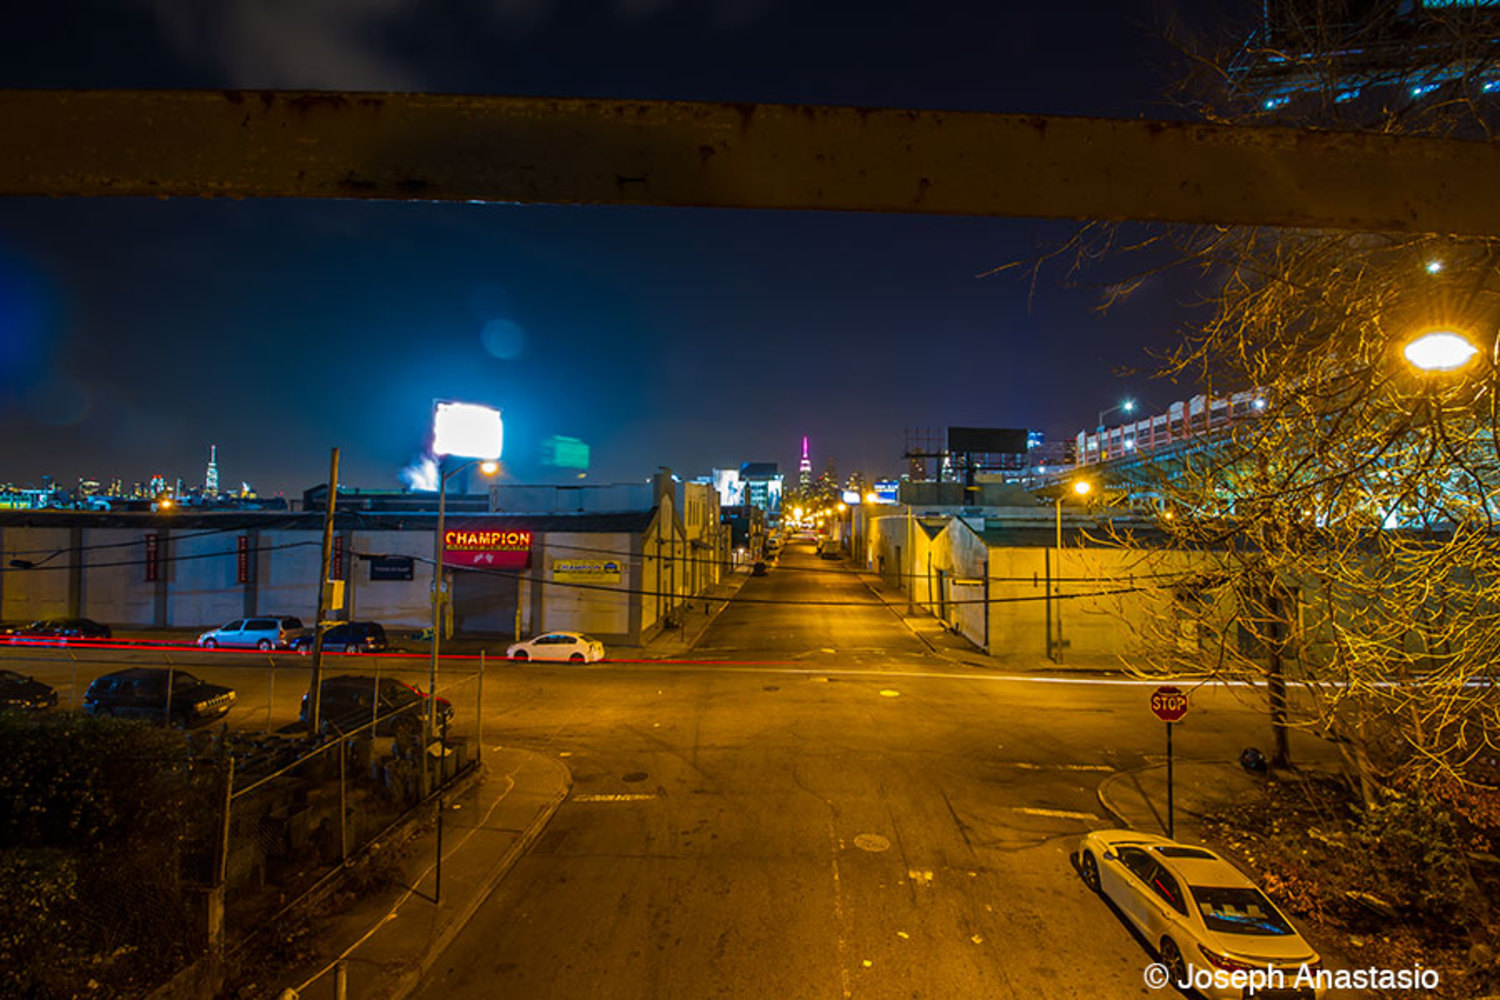 51nd avenue overpass – complete with disgusting light pollution from Fresh Direct's obnoxious billboard